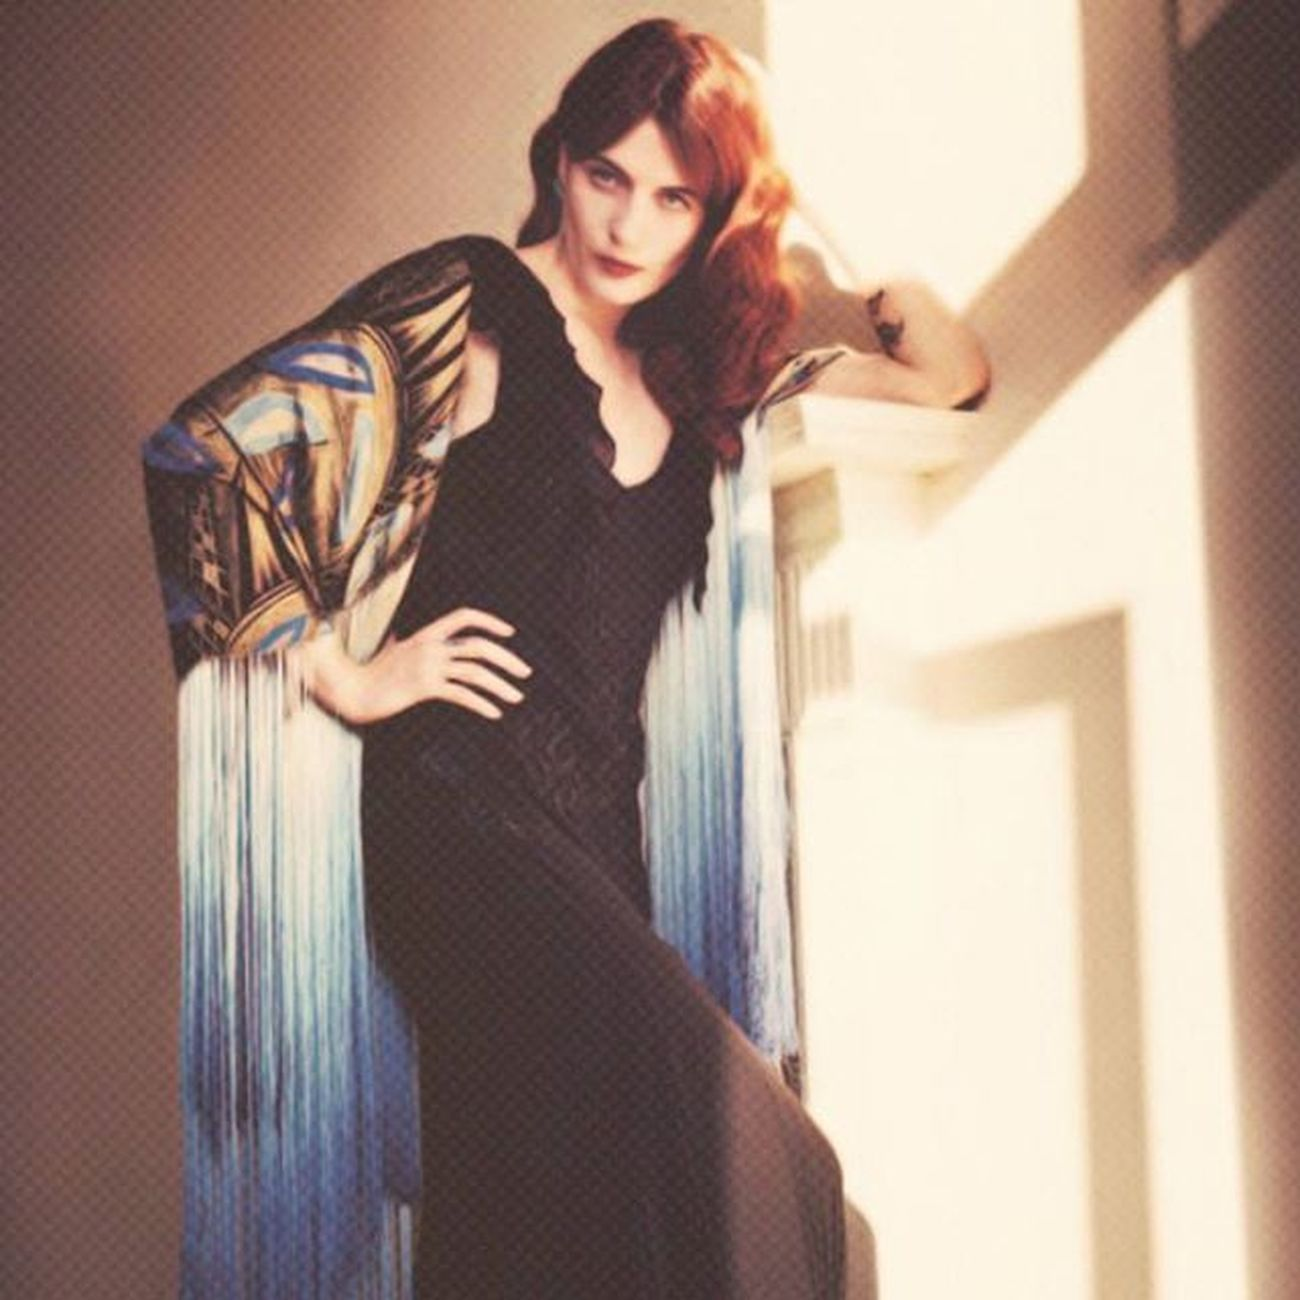 Ceremonials 4 years ago ✨ Ceremonials Florencewelch Florenceandthemachine IGDaily Music Album Florence Photooftheday Landscape Redhead Goddess Flows Flove Lungs Hbhbhb